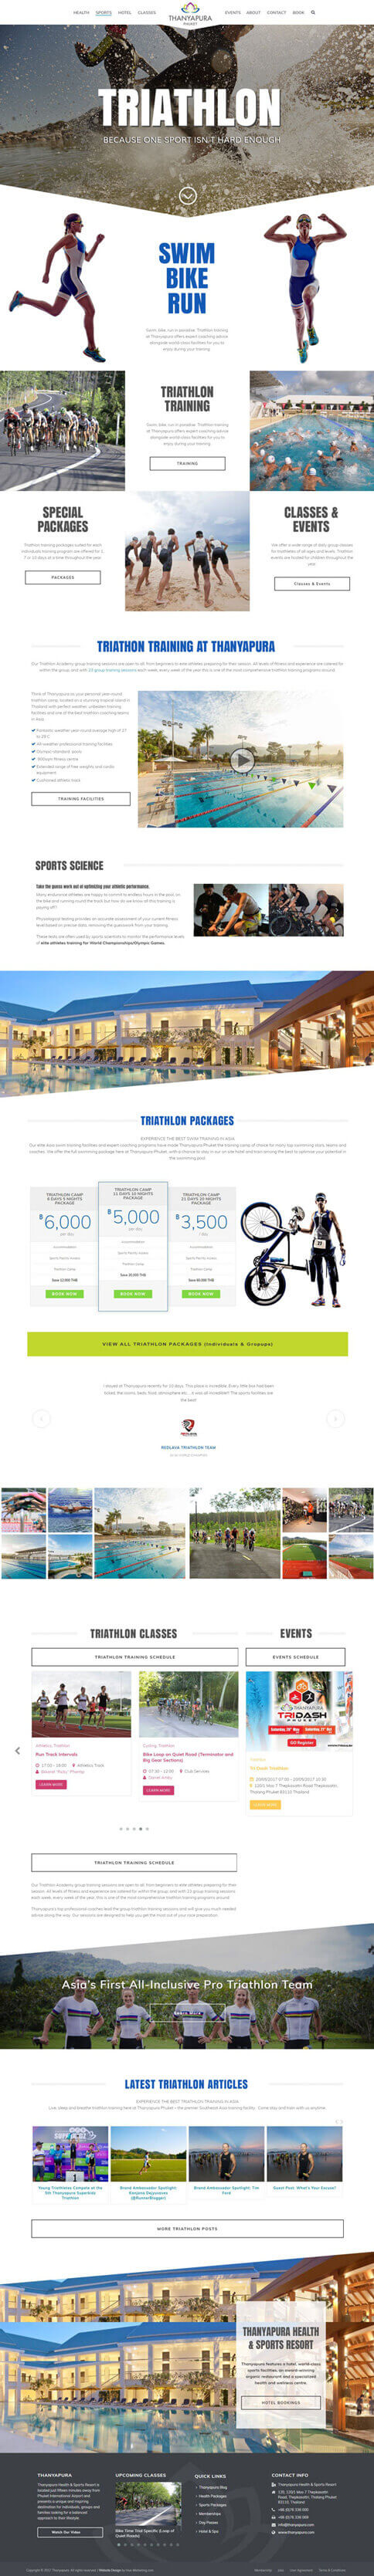 NEW Sports Category Page - Thanyapura Phuket Website Redesign